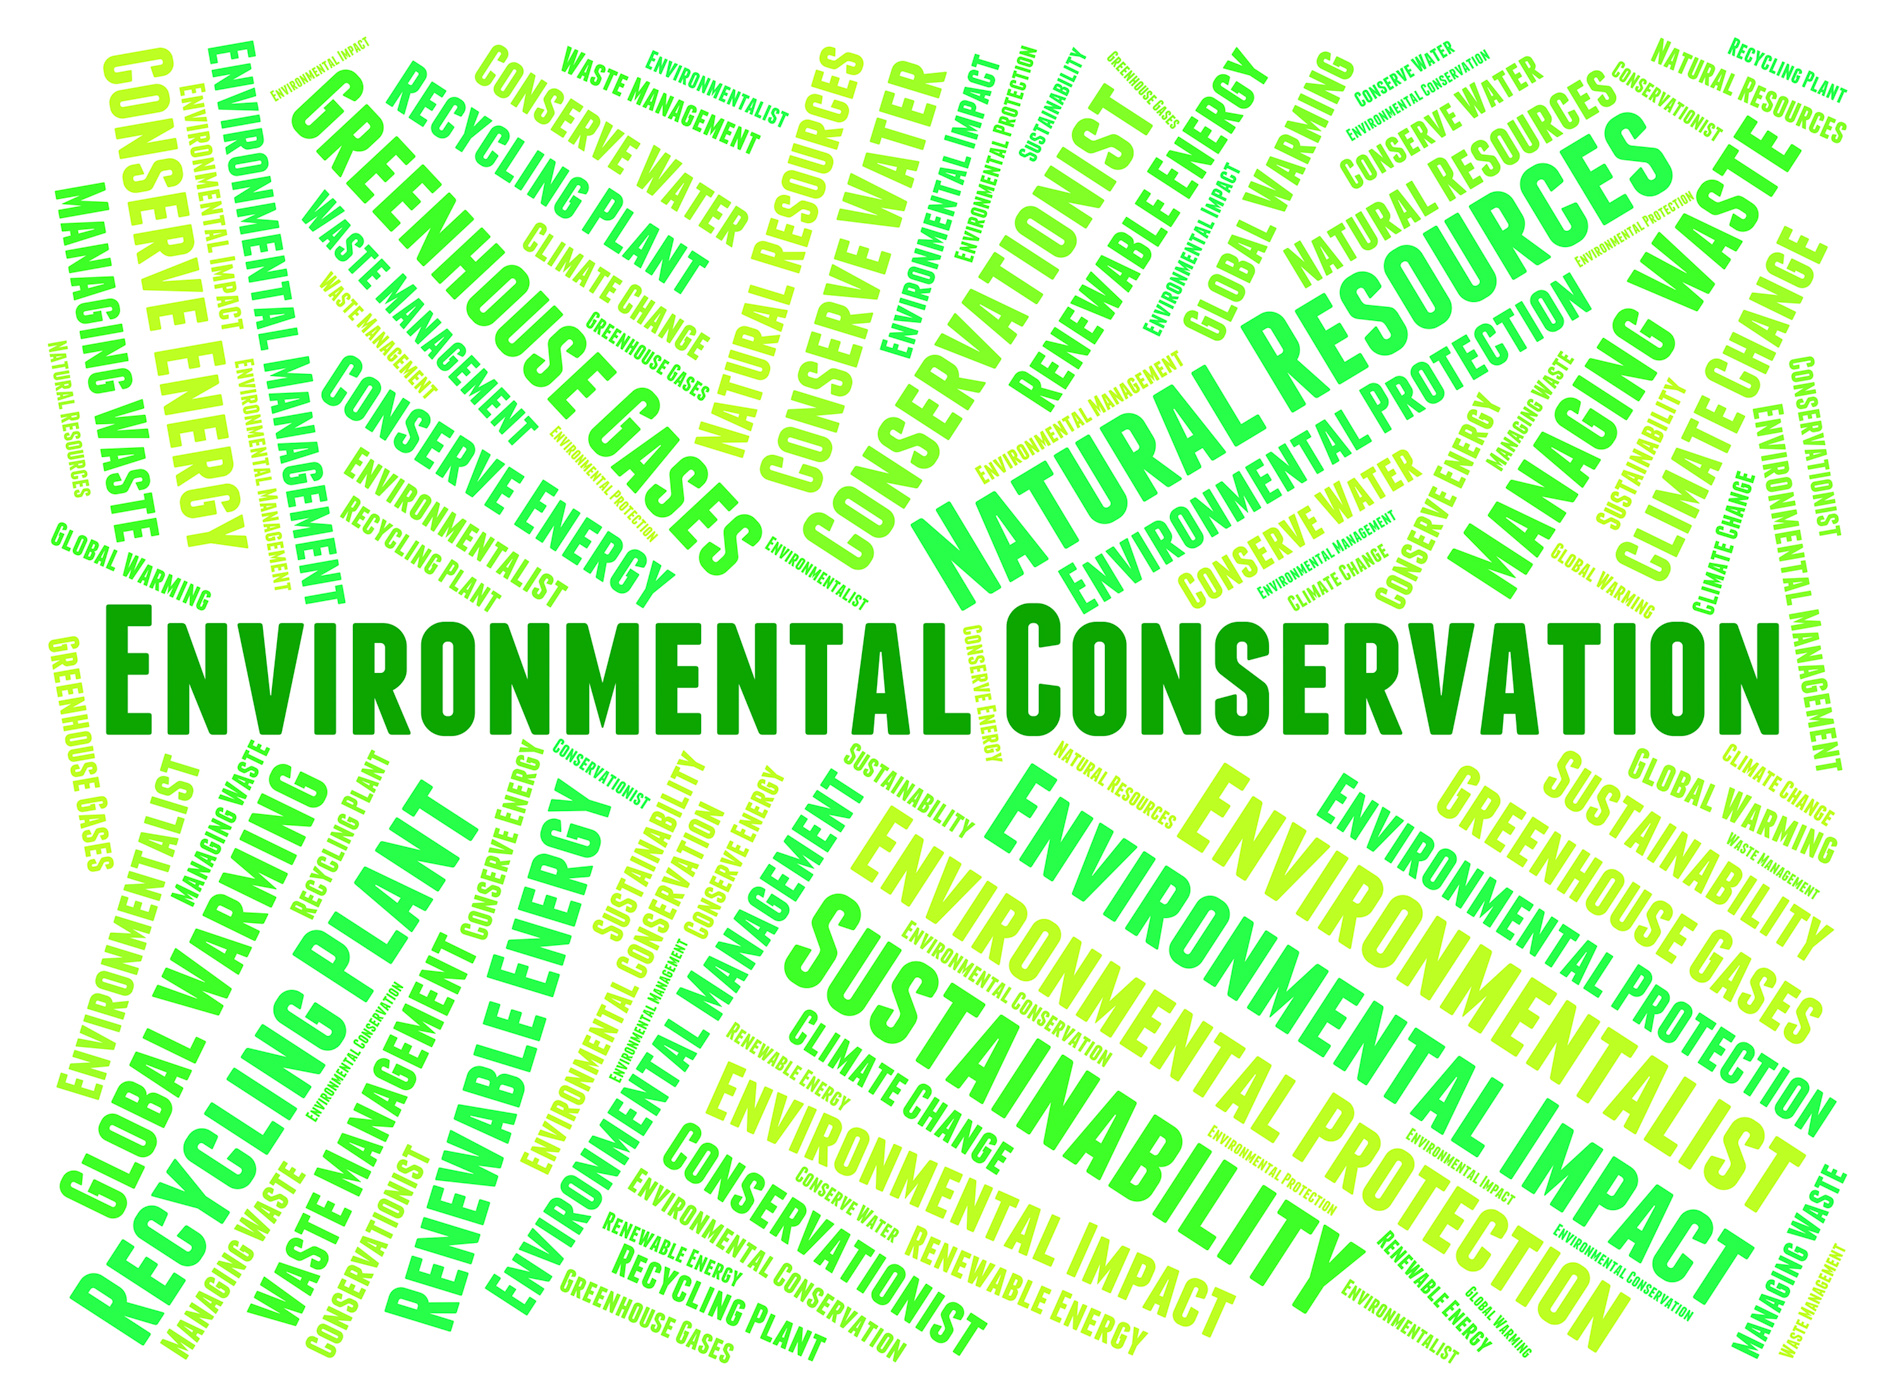 Environmental Conservation Meaning Conserving Protection And Conserve